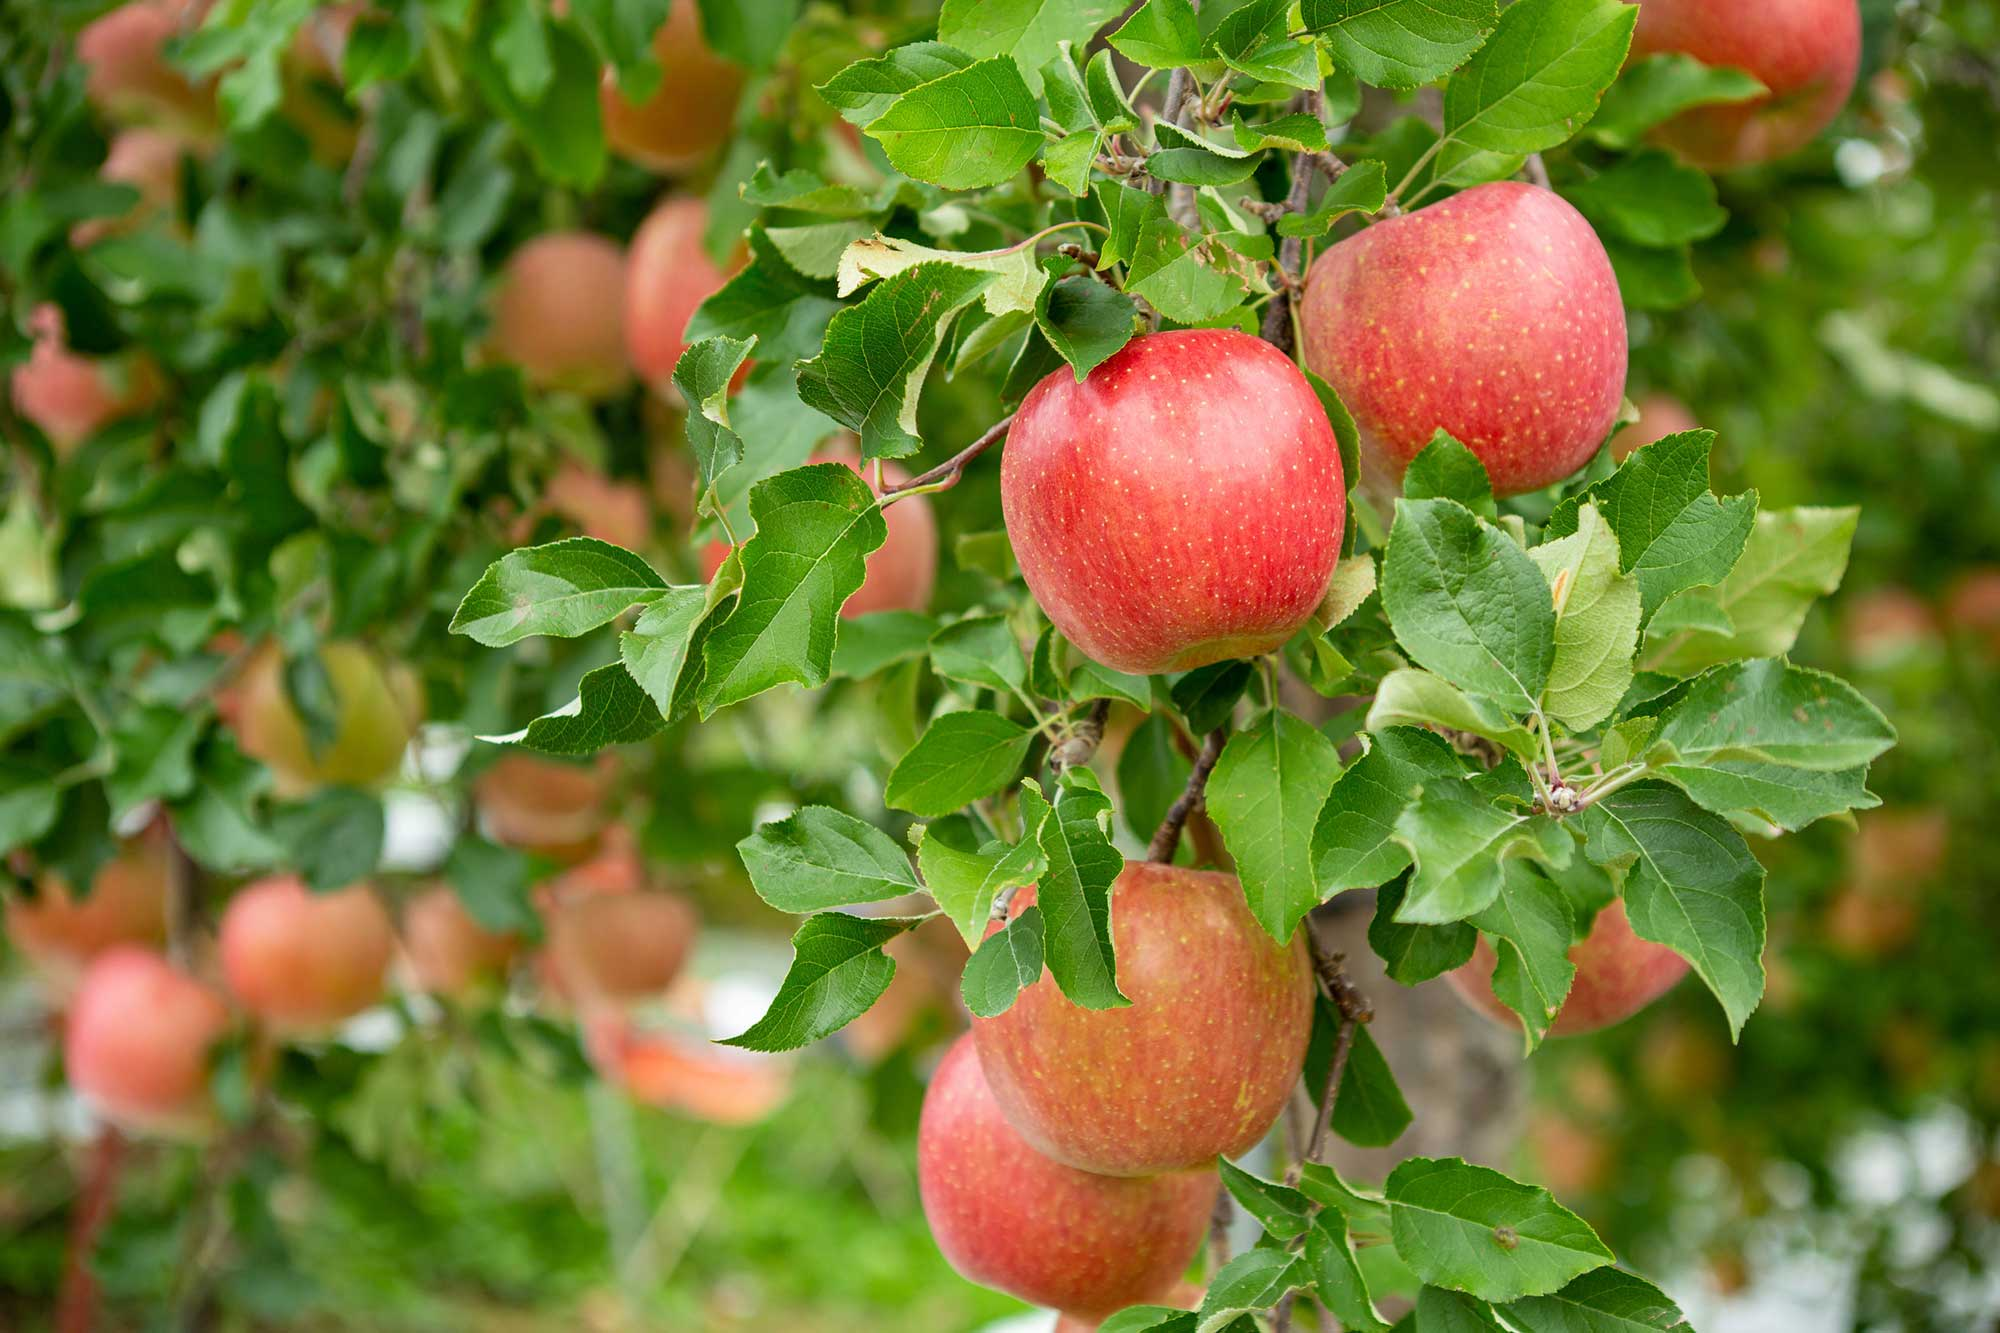 Fruit tree care for apples